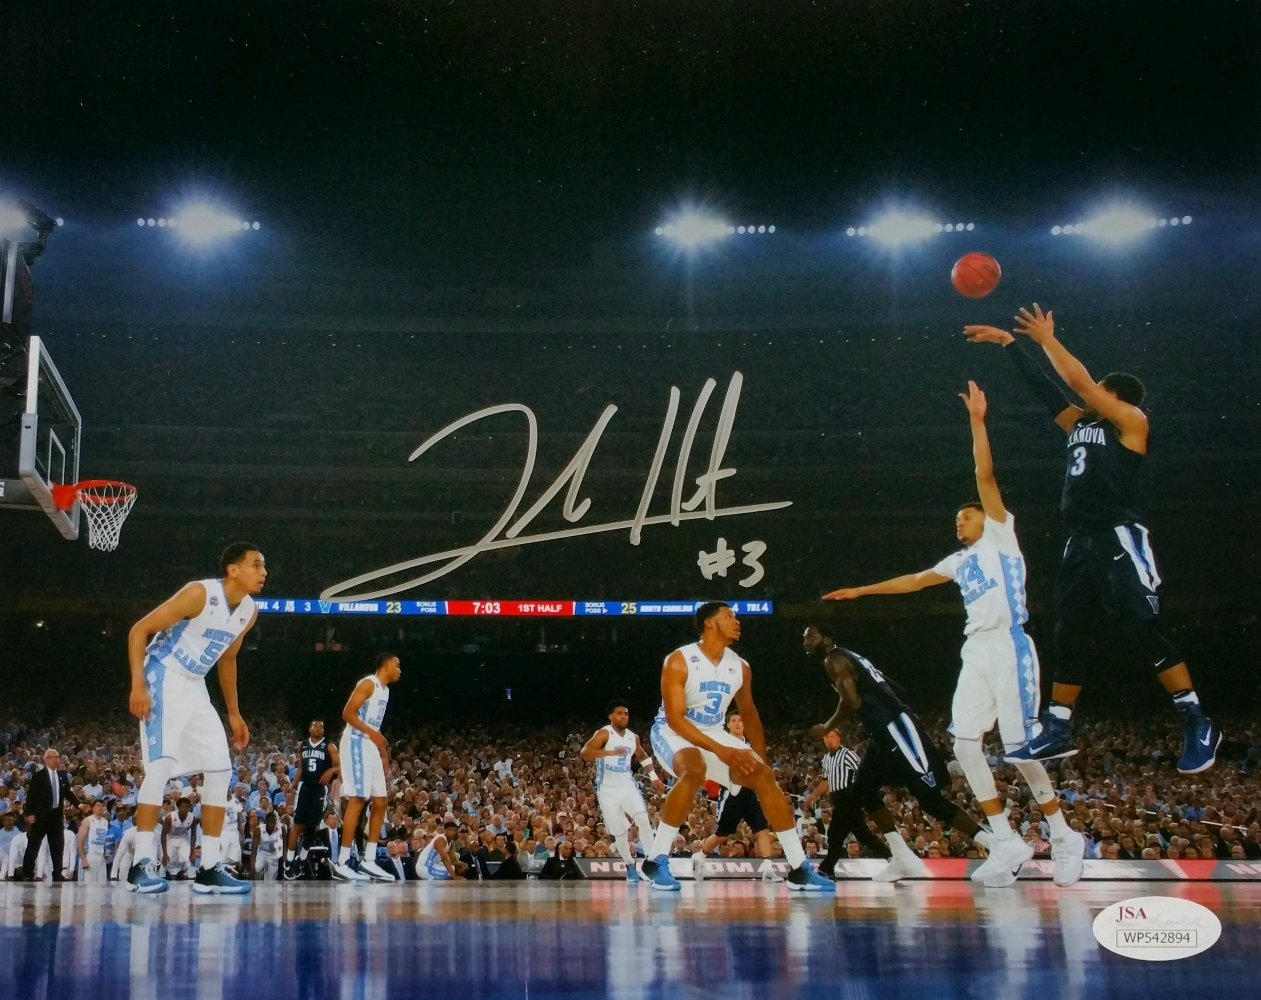 Josh Hart Signed Villanova 2016 National Championship Game 8x10 Photo JSA